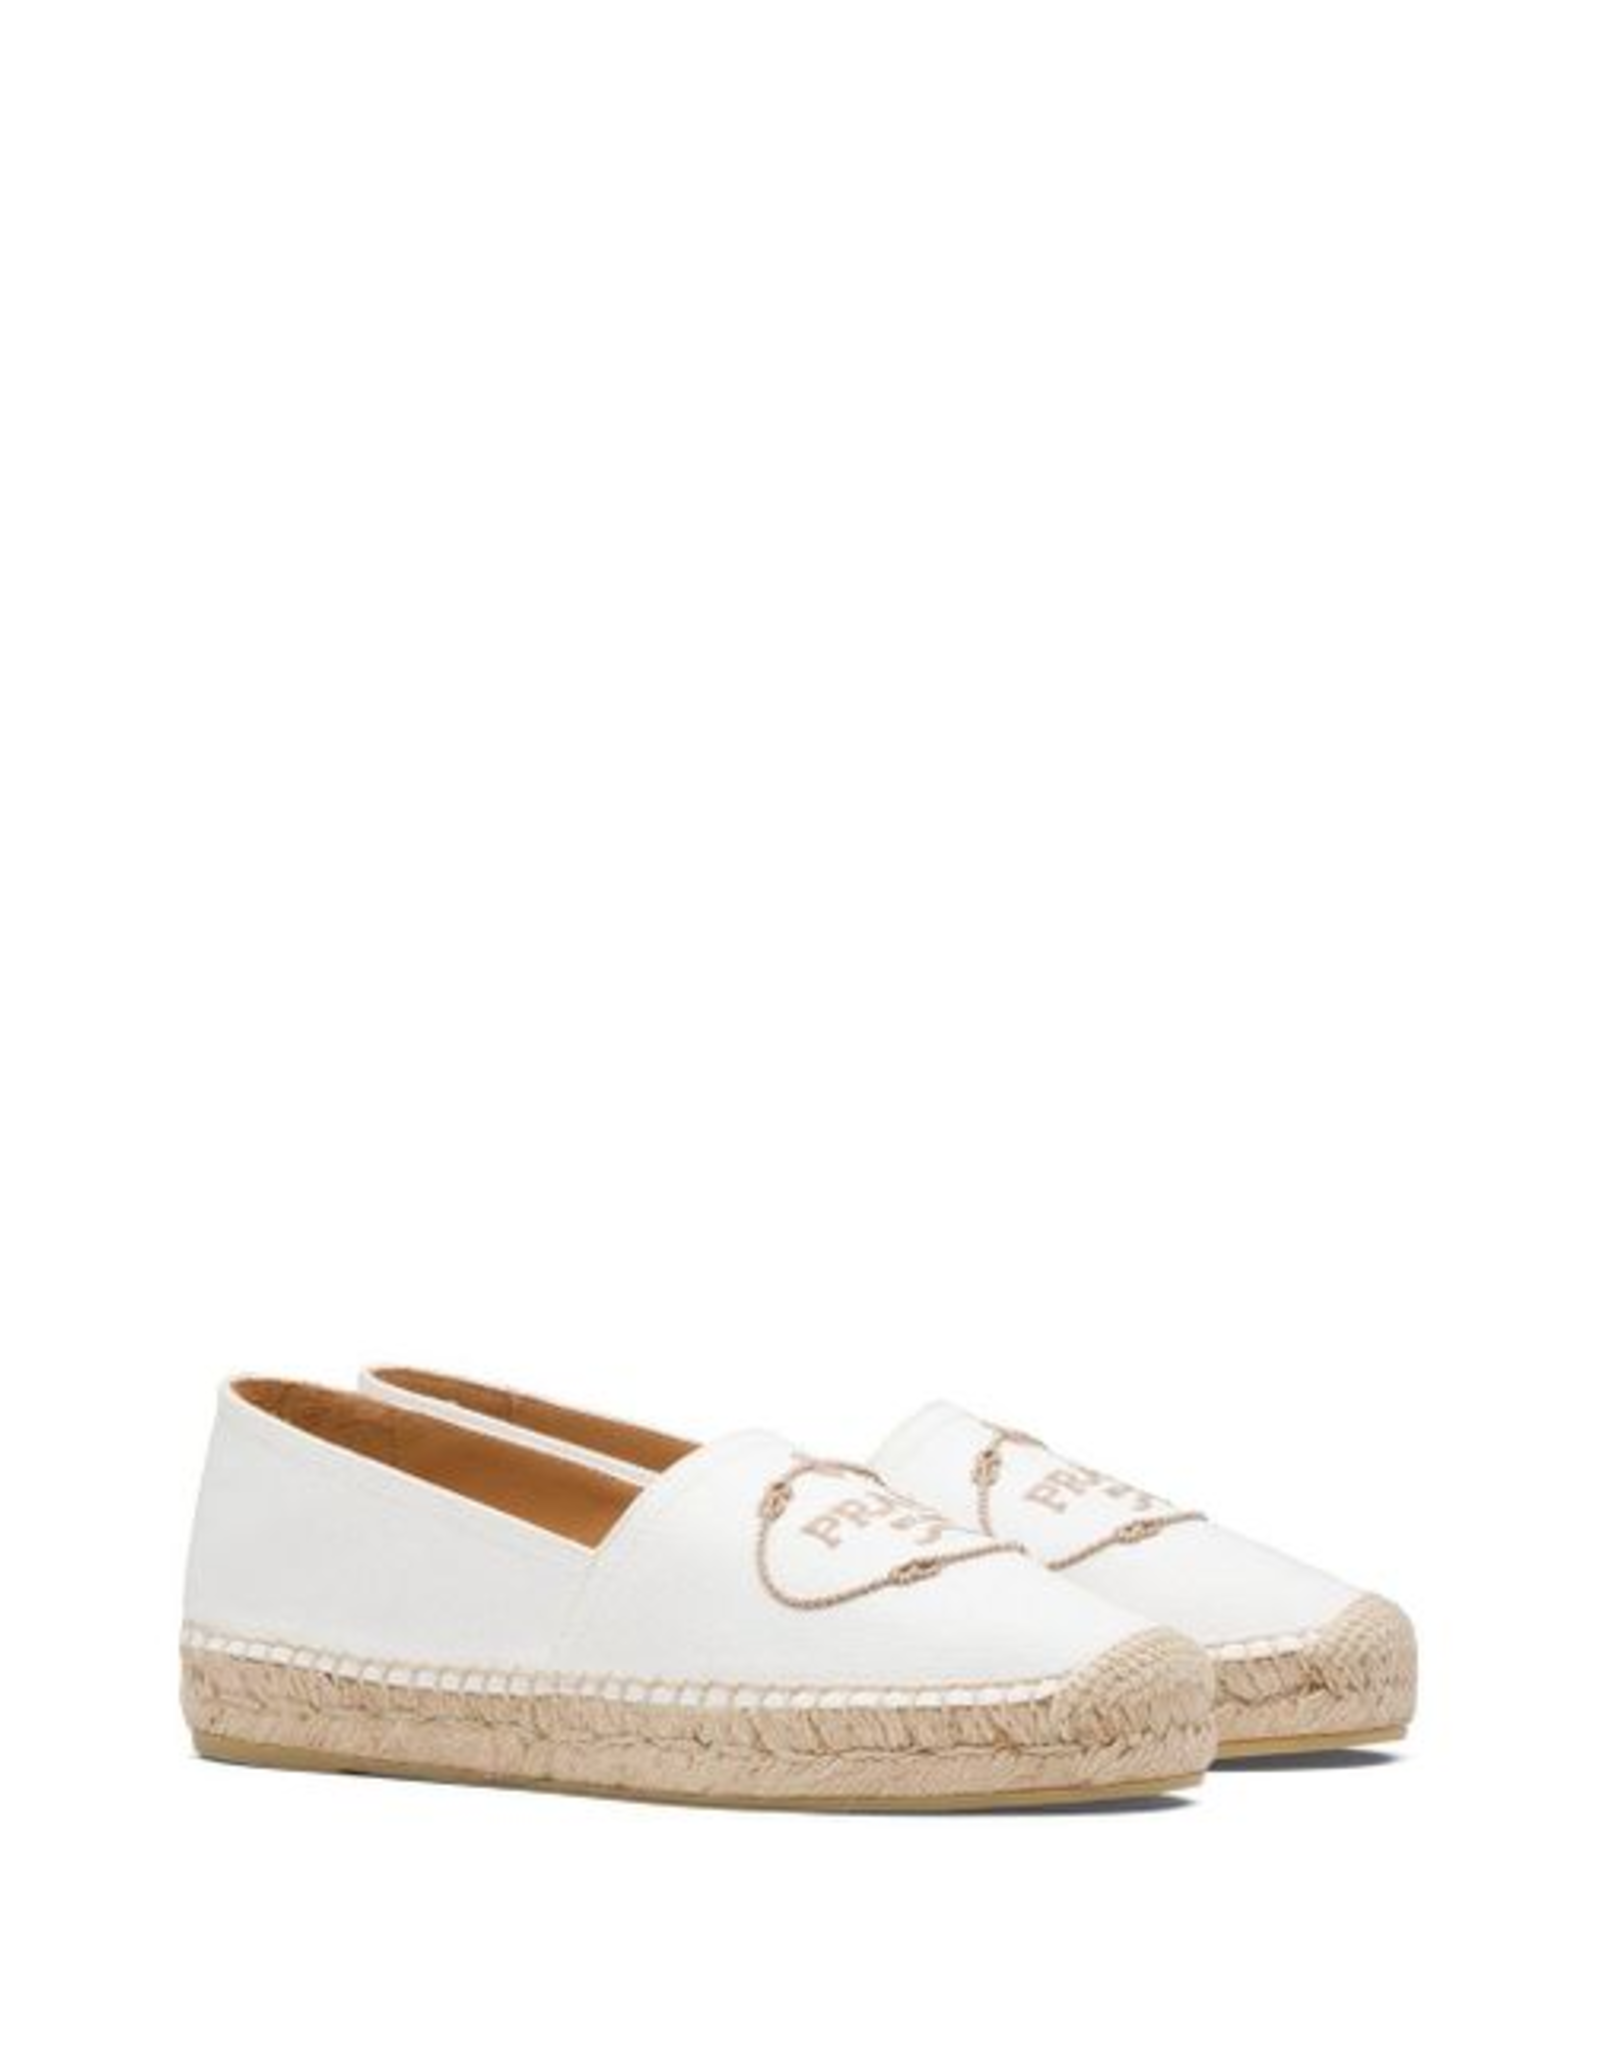 Prada Prada Canvas Slip-On Espadrilles